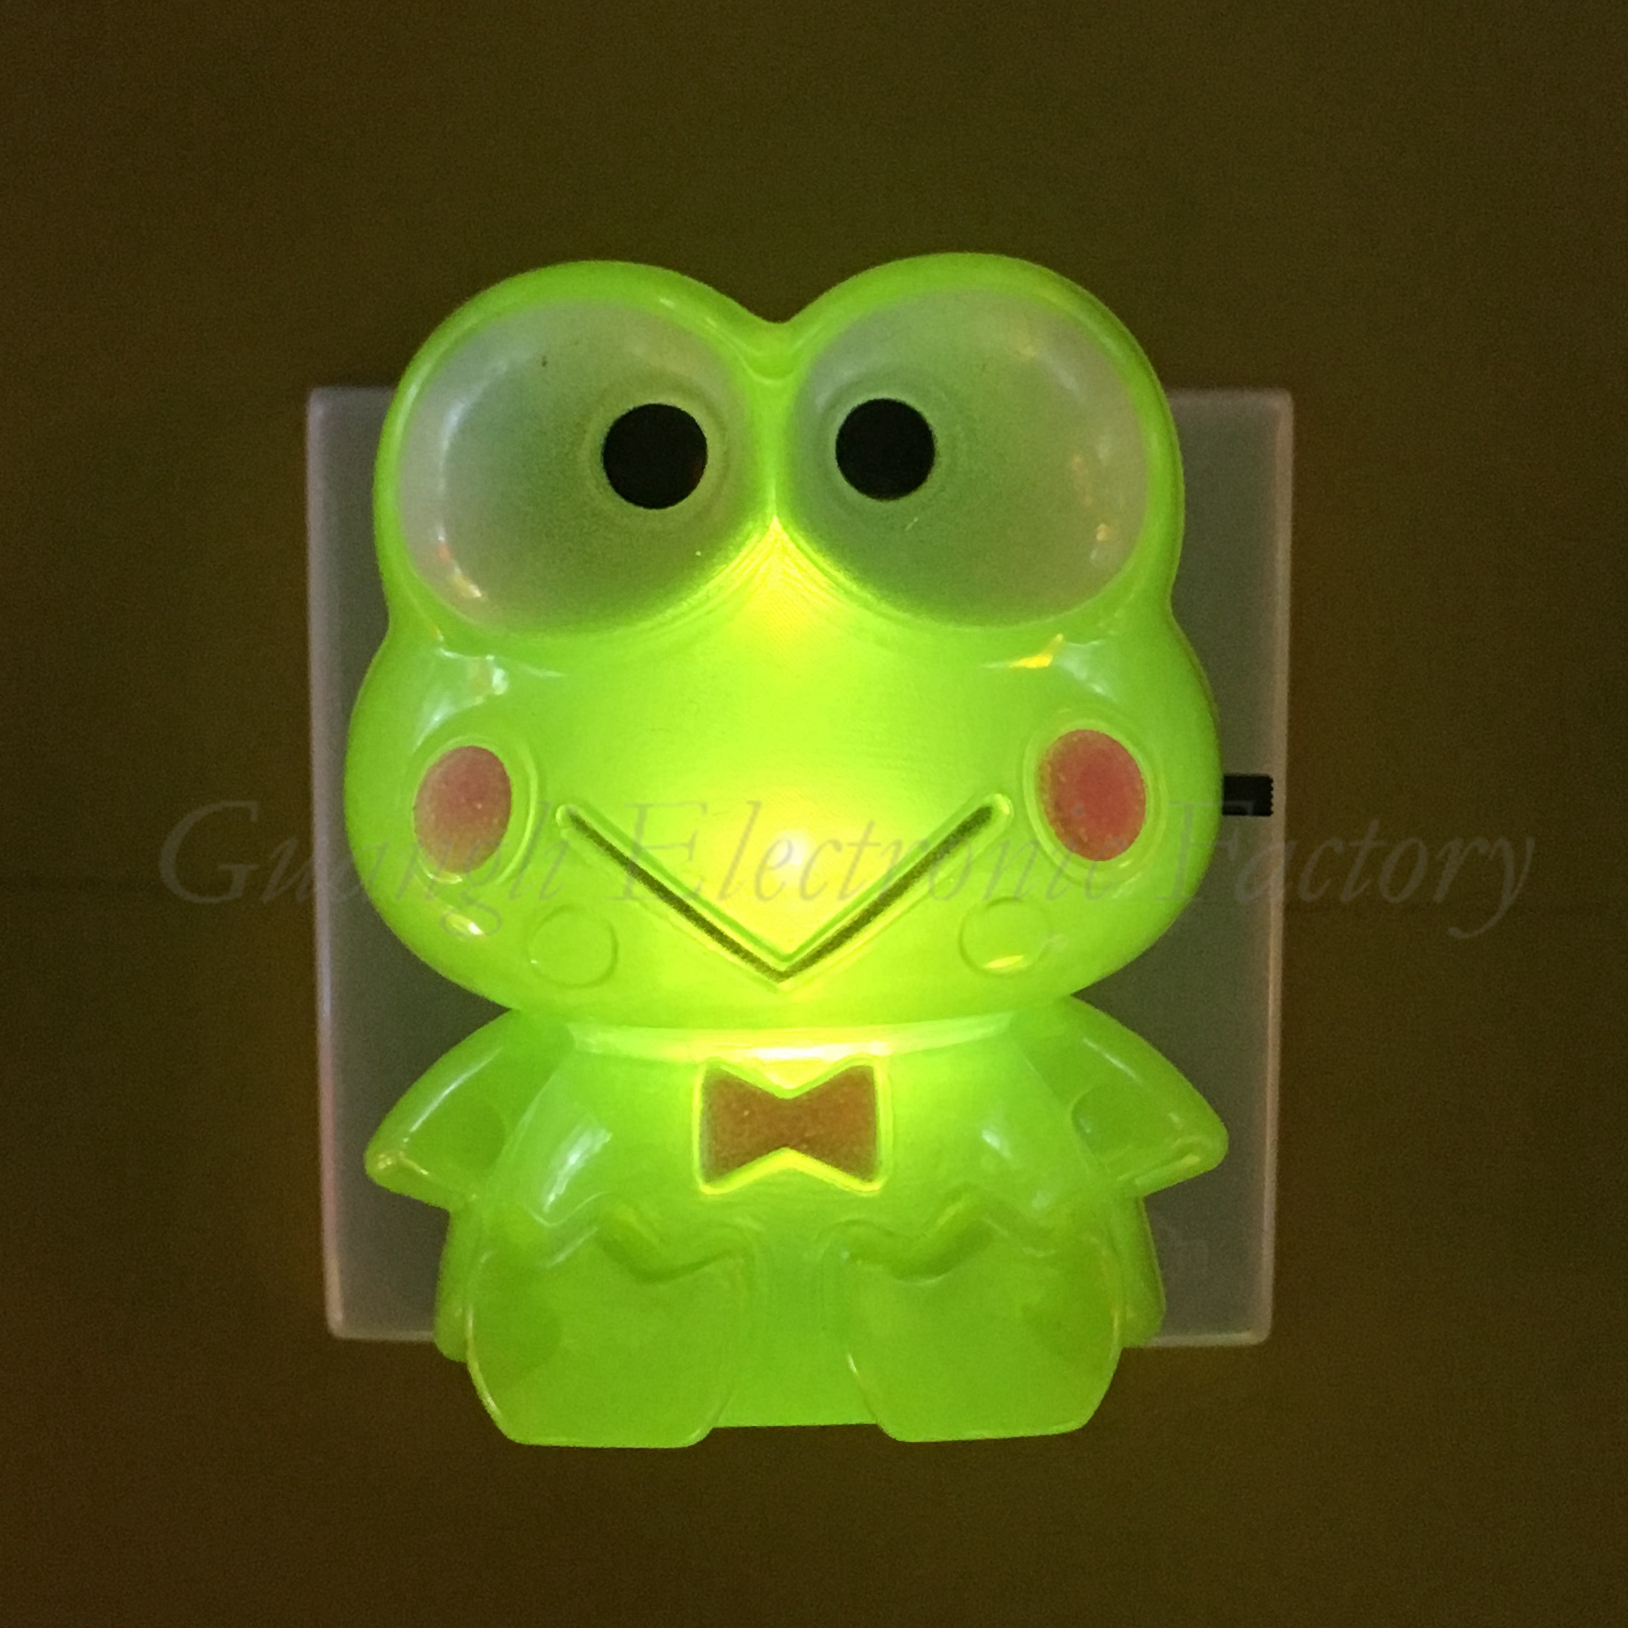 GL-W034 Cartoon shape LED SMD mini switch plug in night light with 0.6W and 110V or 220V W034